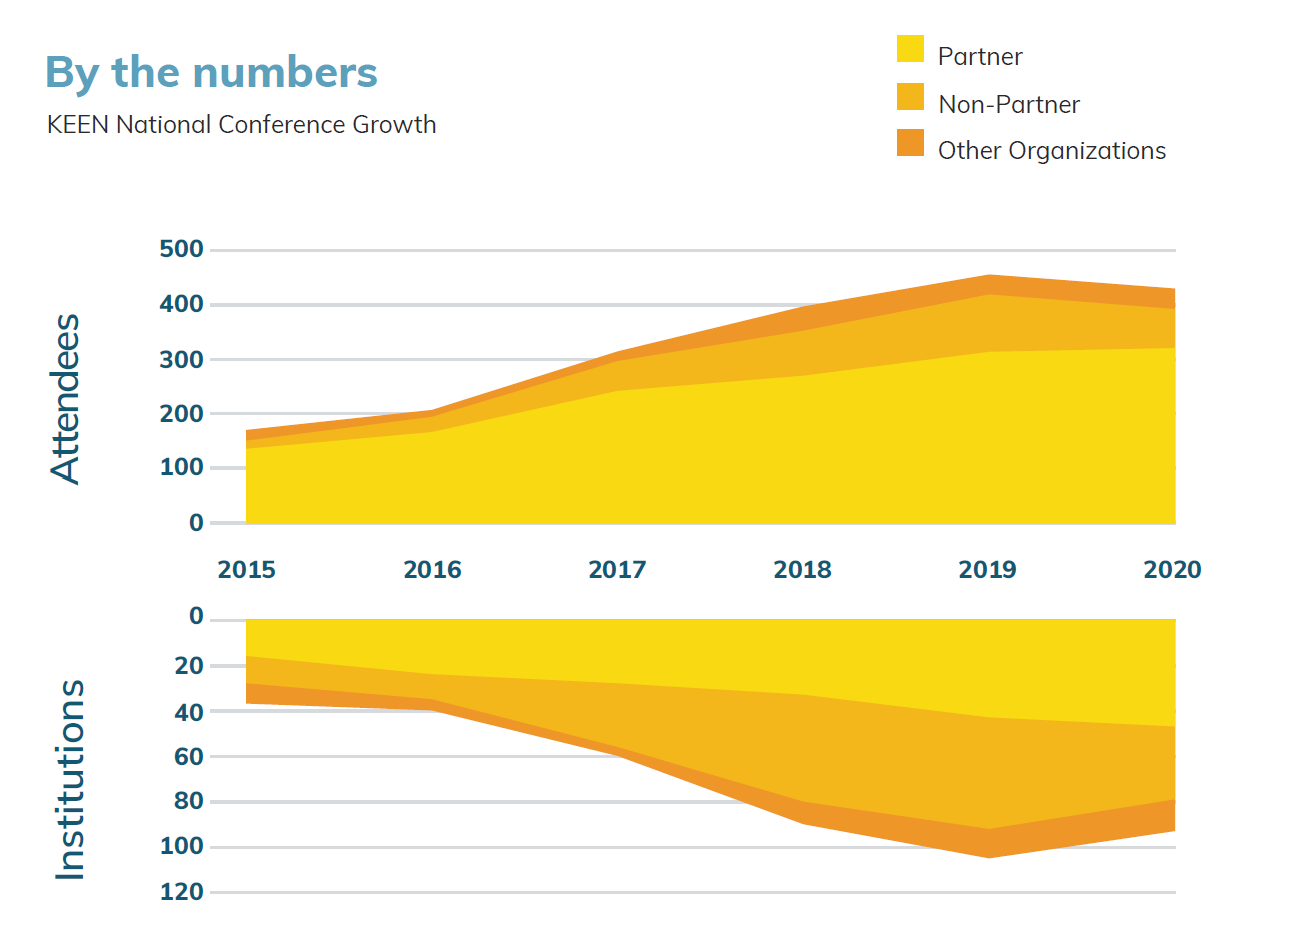 KEEN Annual Report 2020 Network Connectivity